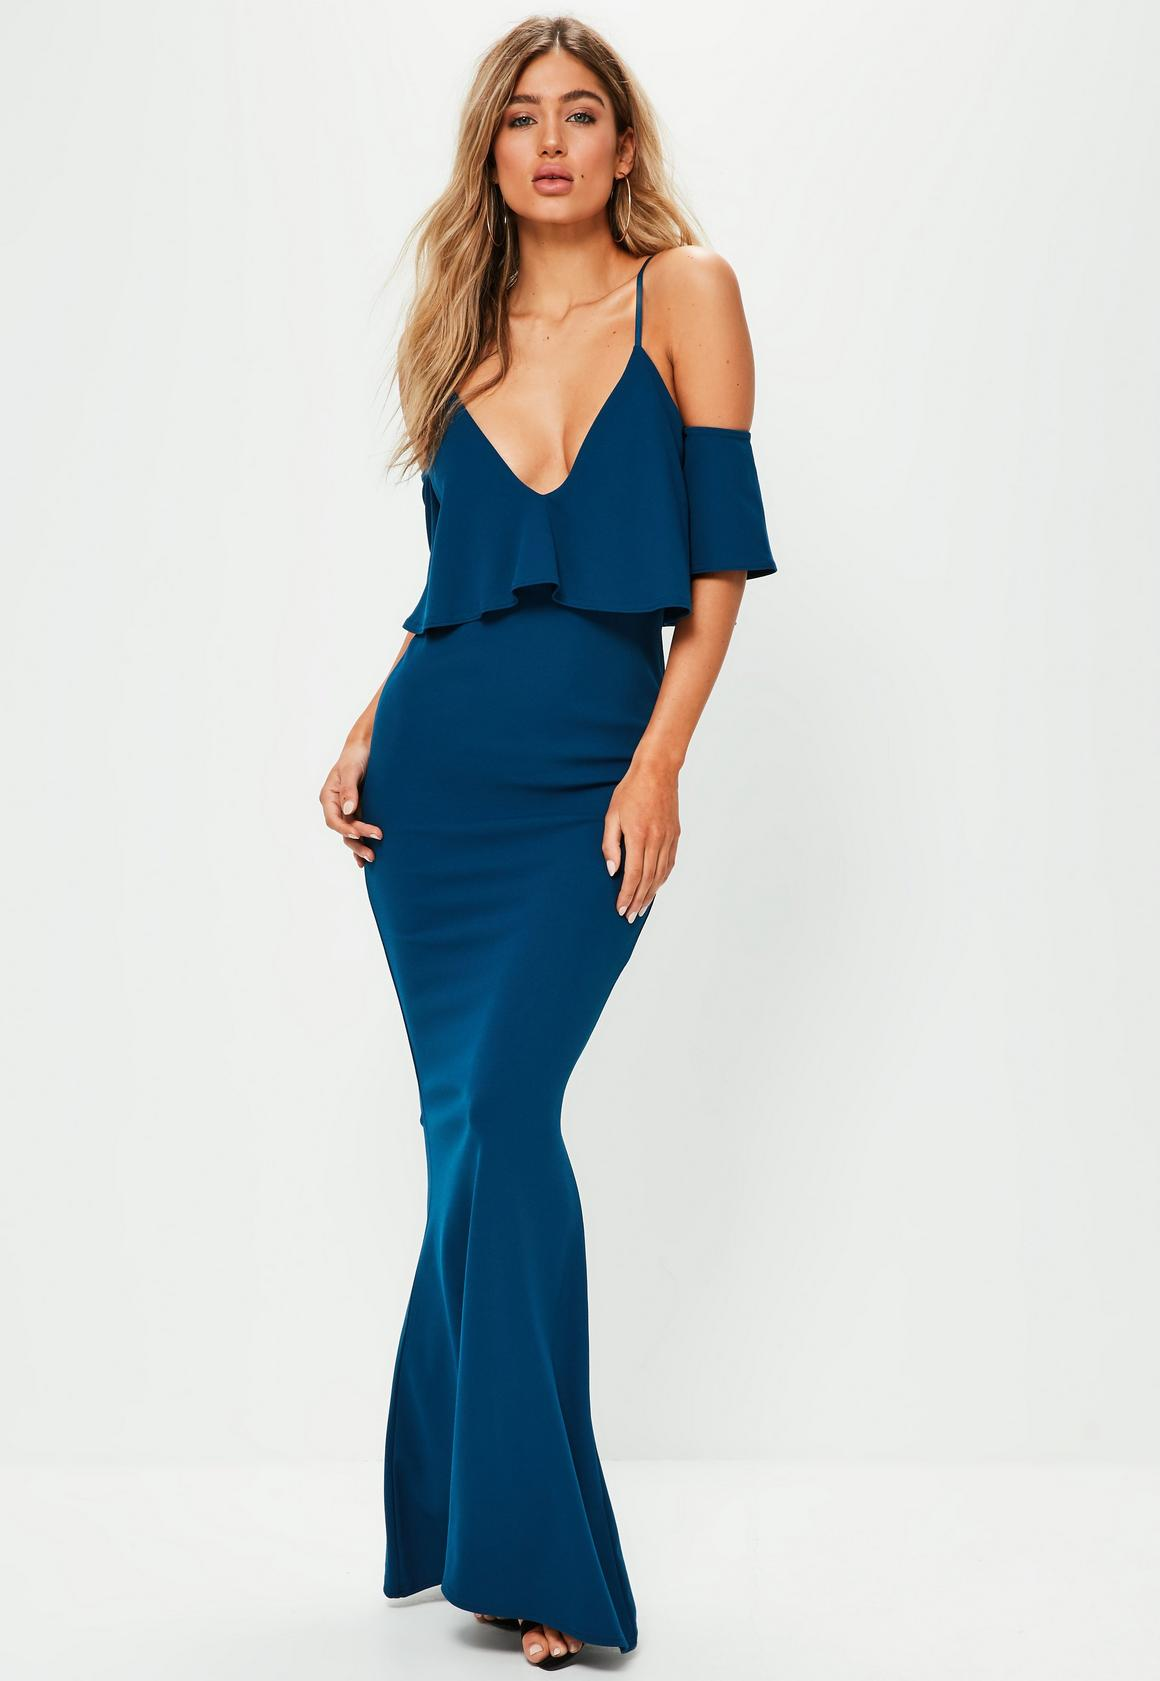 Blue Strappy Frill Fishtail Maxi Dress | Missguided